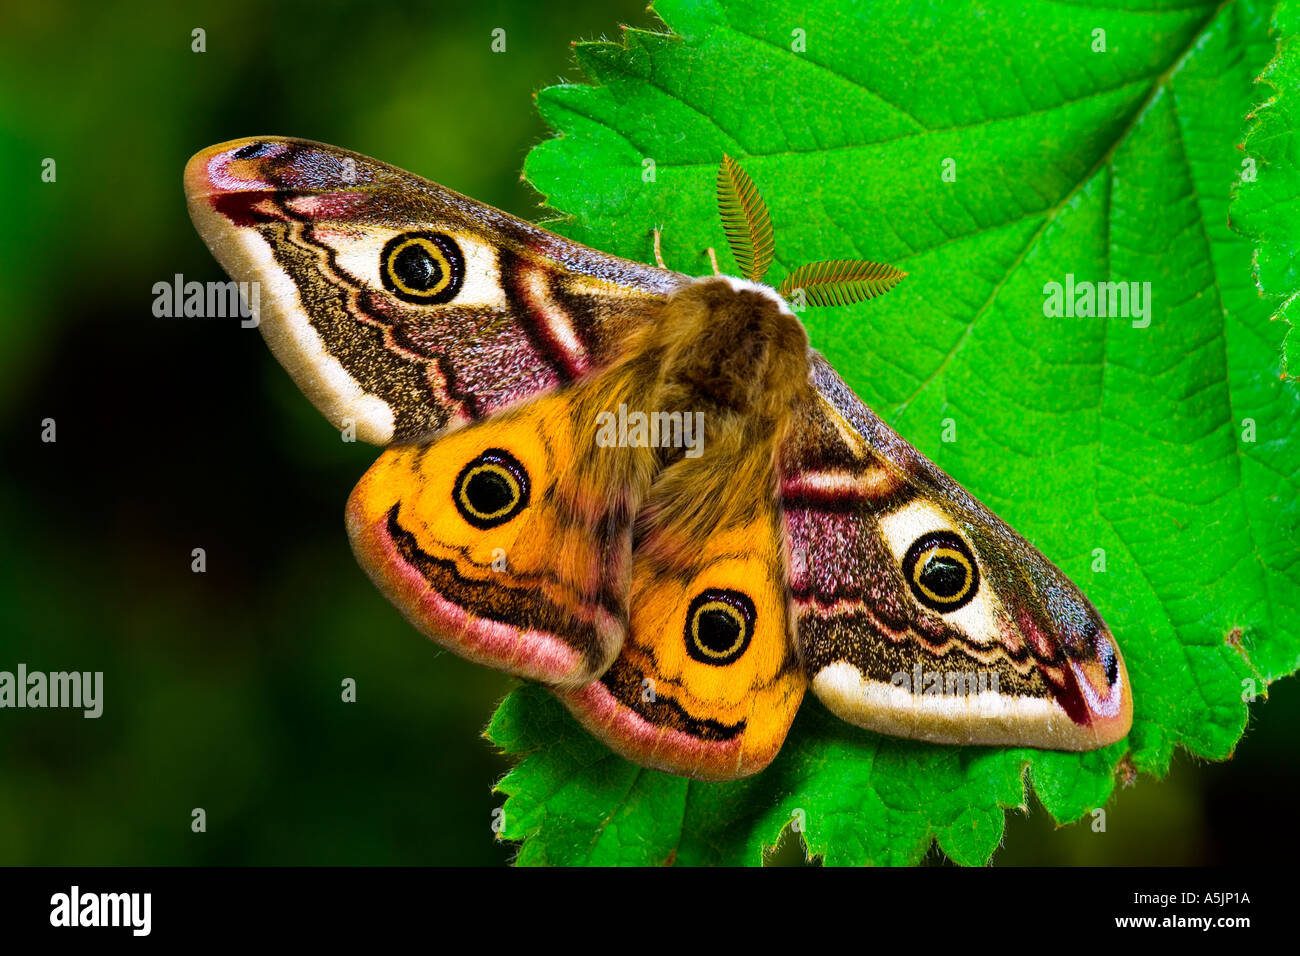 Papillon empereur Pavonia pavonia au repos sur bramble leaf bedfordshire potton Photo Stock